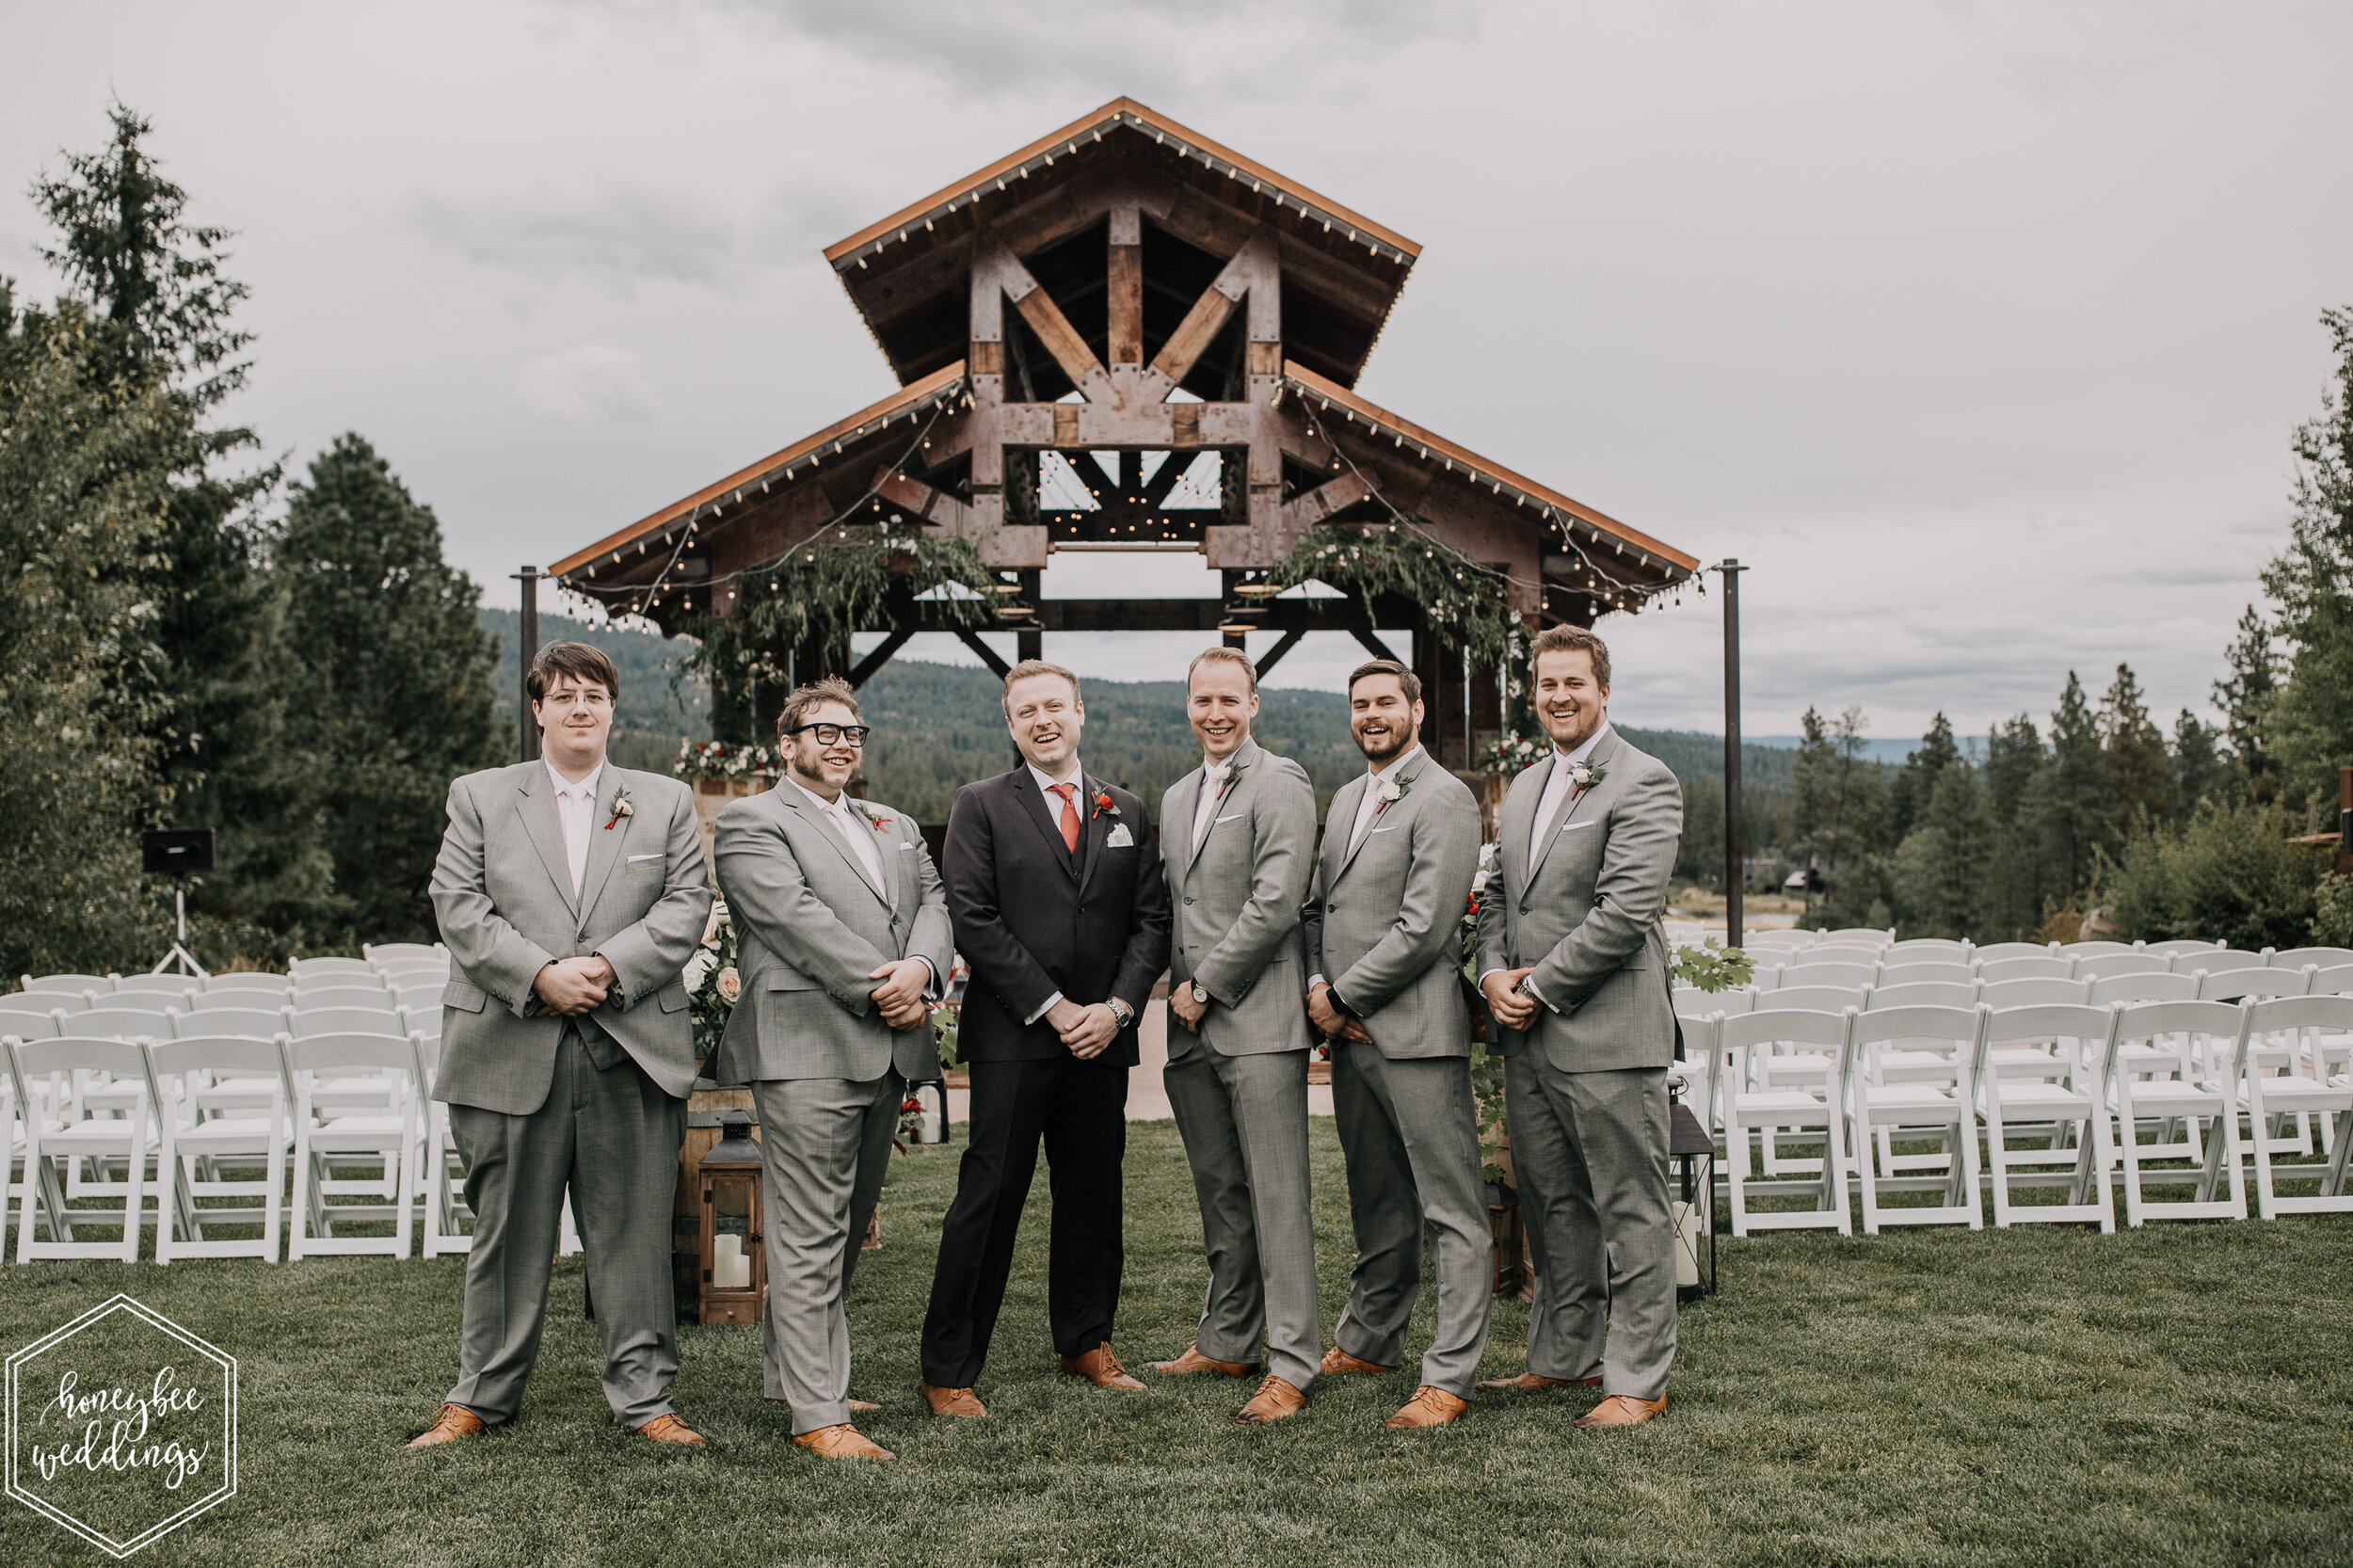 0101Swiftwater Cellars Wedding_Cle Elum Wedding_Montana Wedding Photographer_Kat & Kyle_September 15, 2018-393.jpg